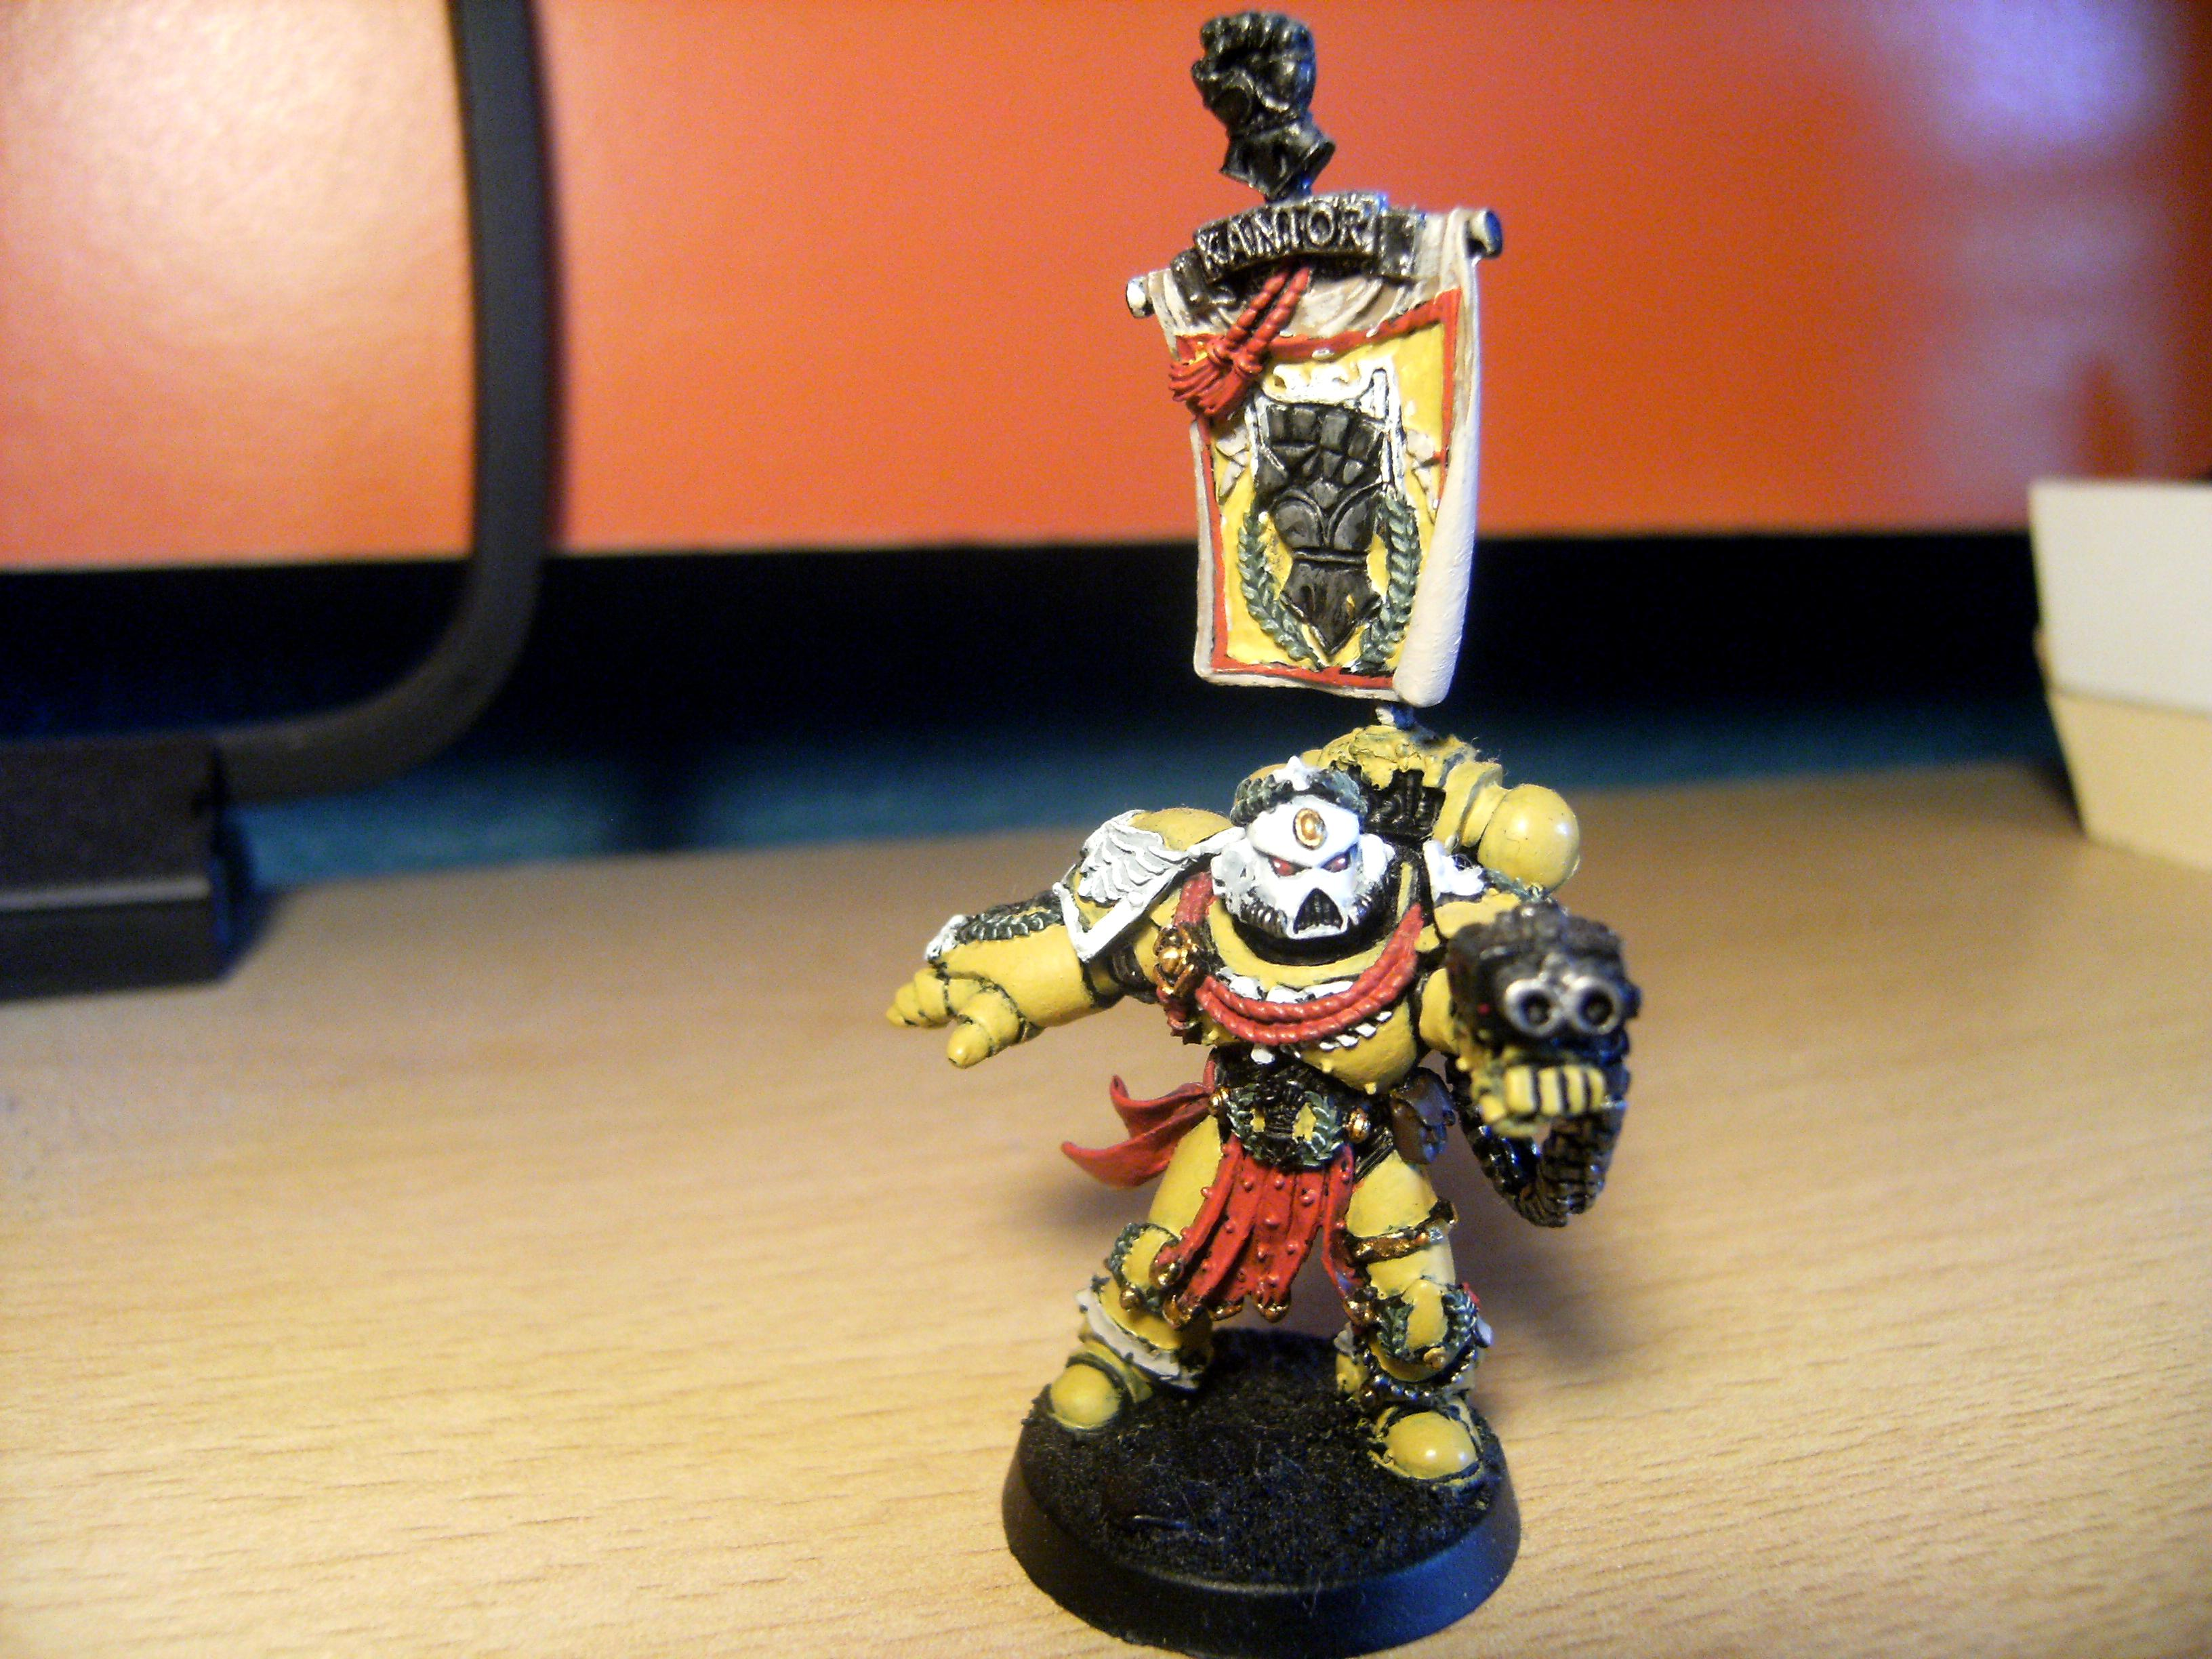 Imperial Fist Space Marines, Pedro Kantor